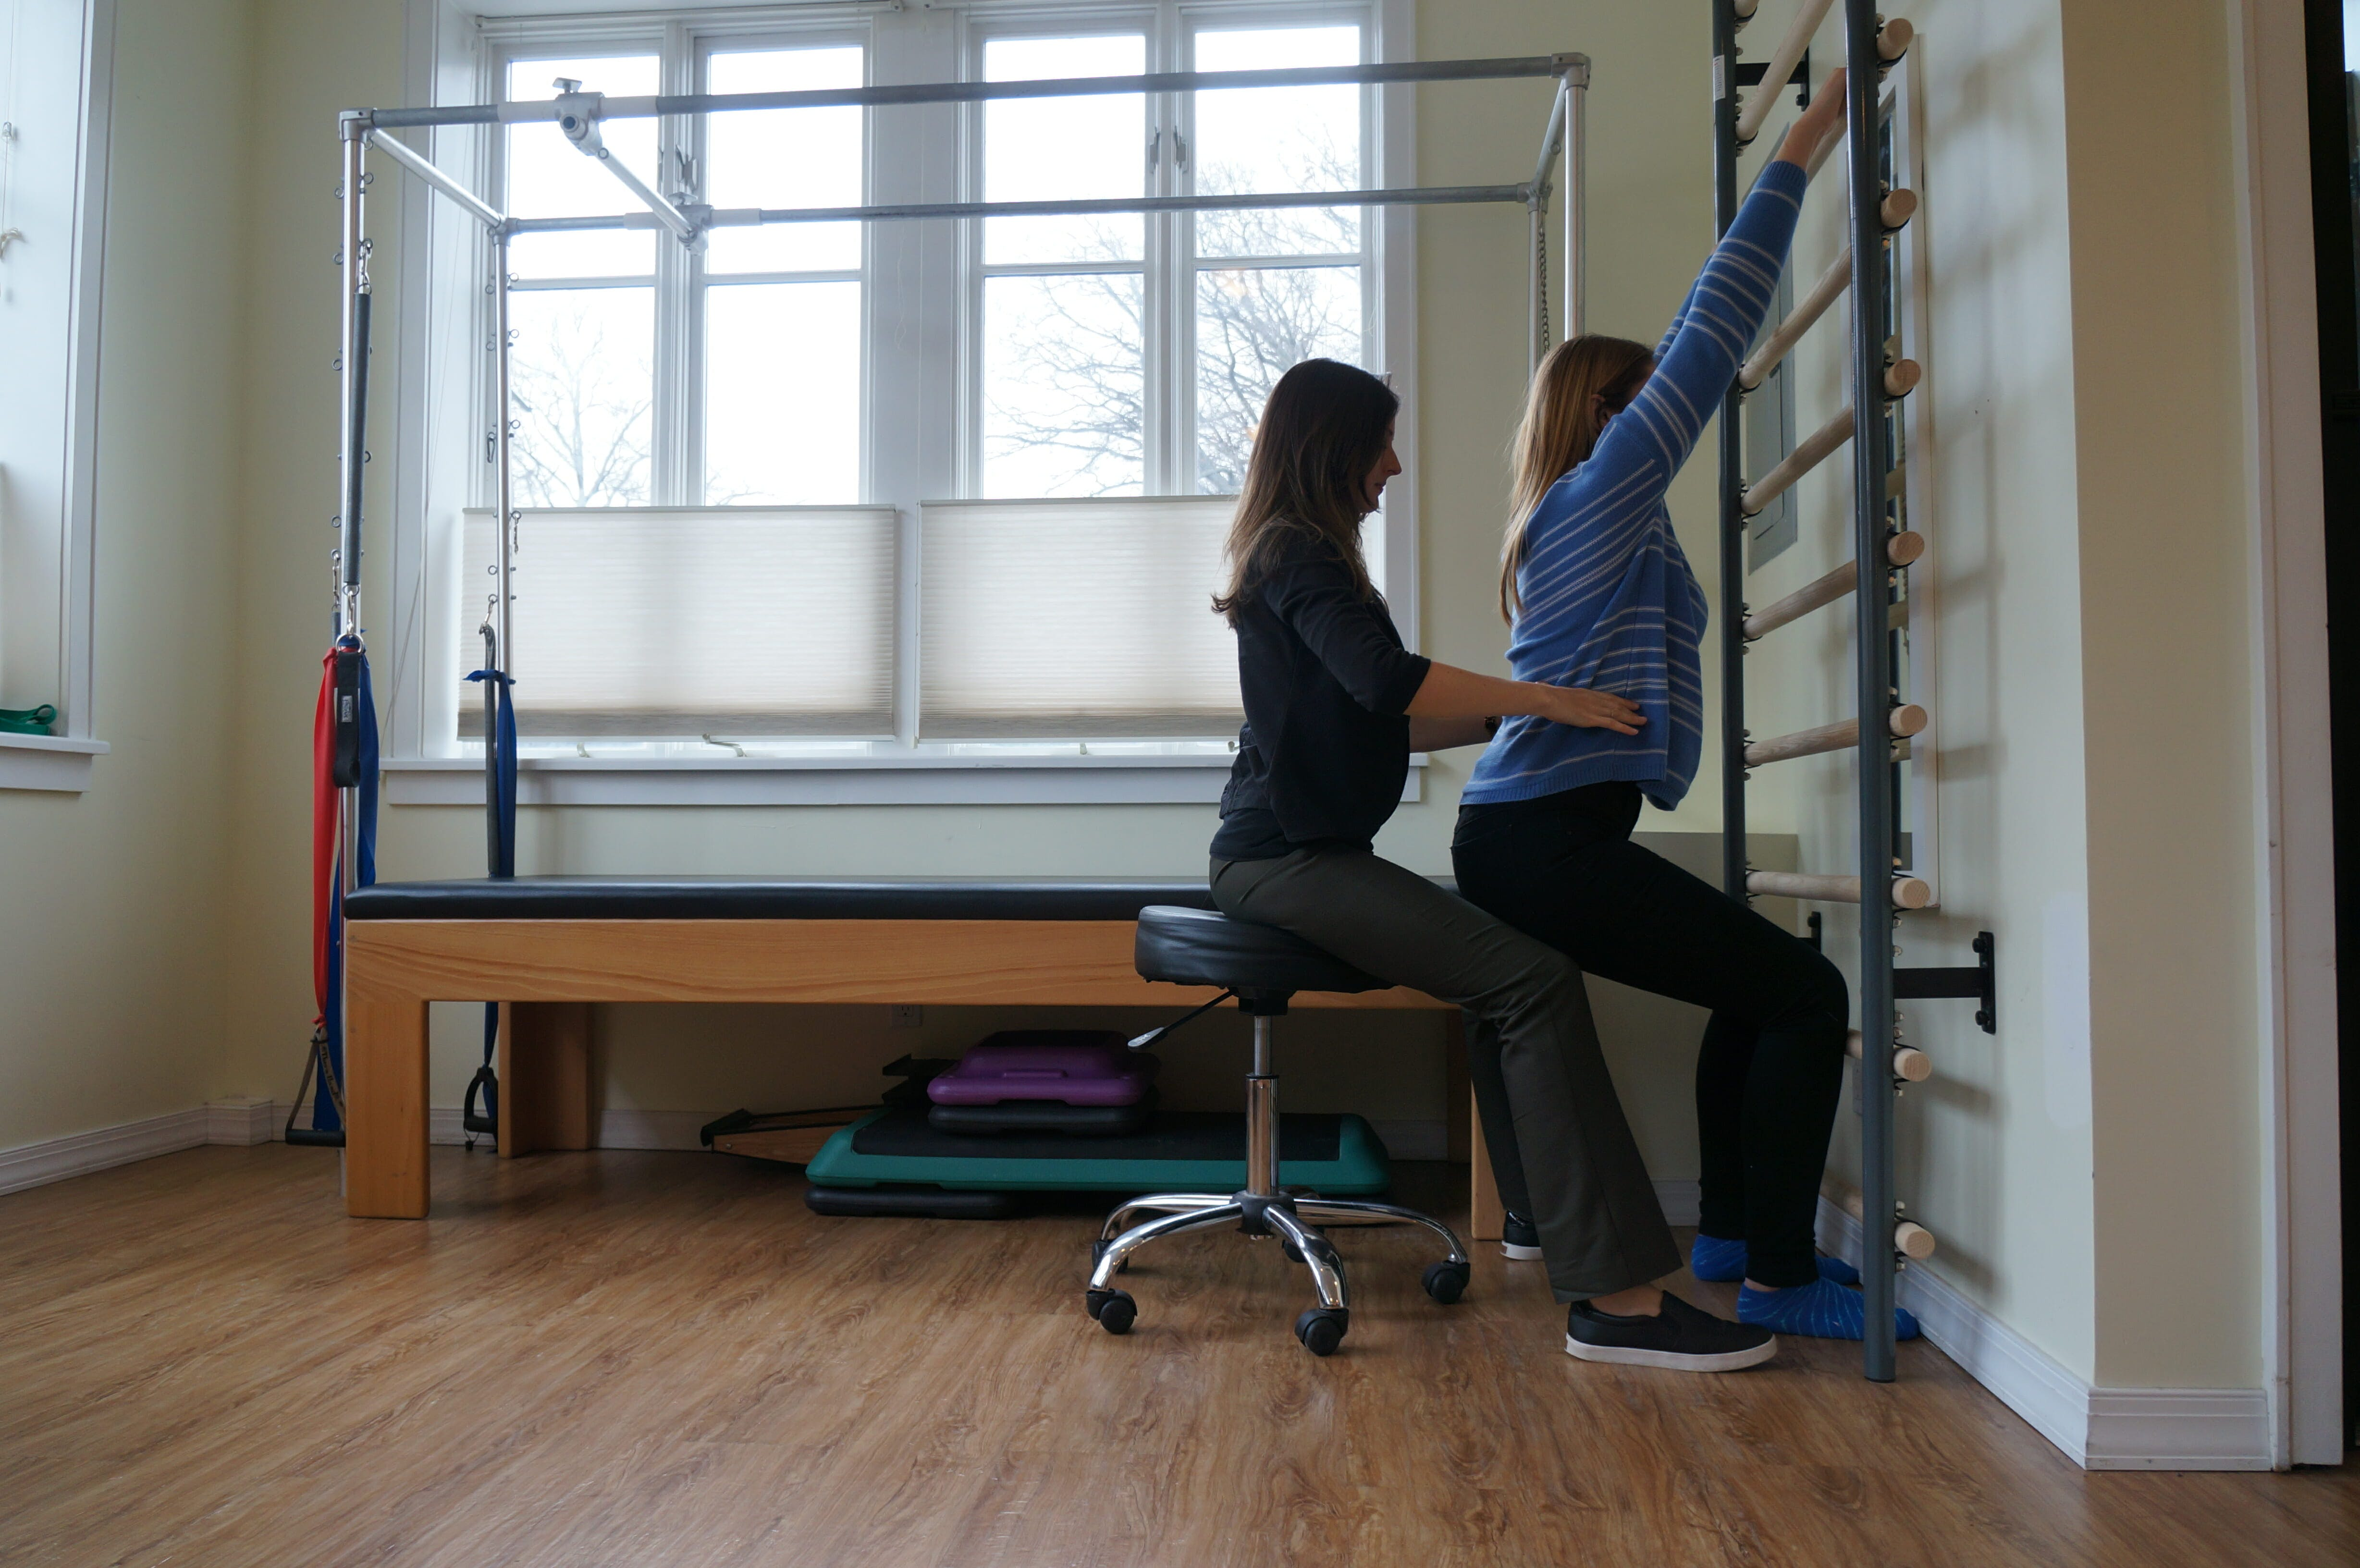 Scoliosis treatment with Certified Schroth Therapist, Kristin Romeo, DPT | Park Sports Physical Therapy